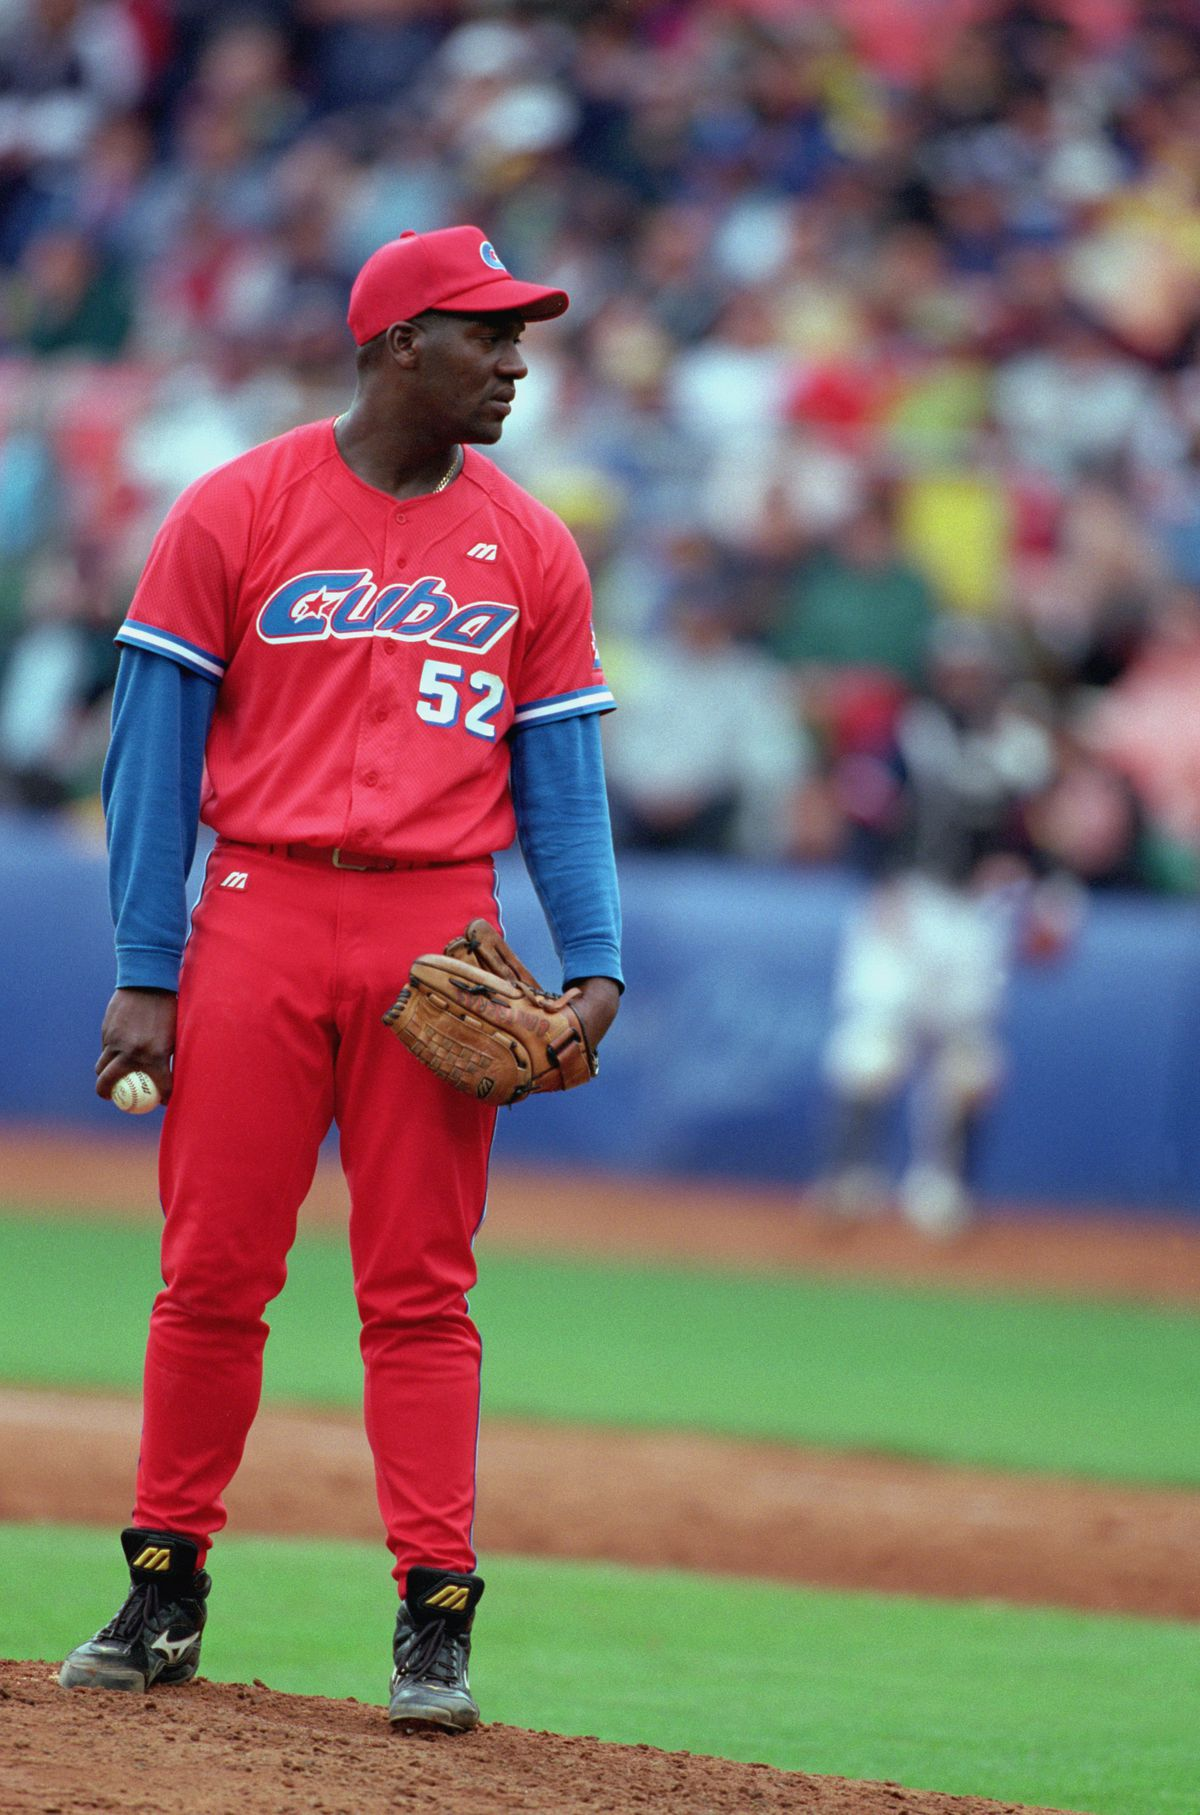 Jose Ariel Contreras of Cuba stands on the mound